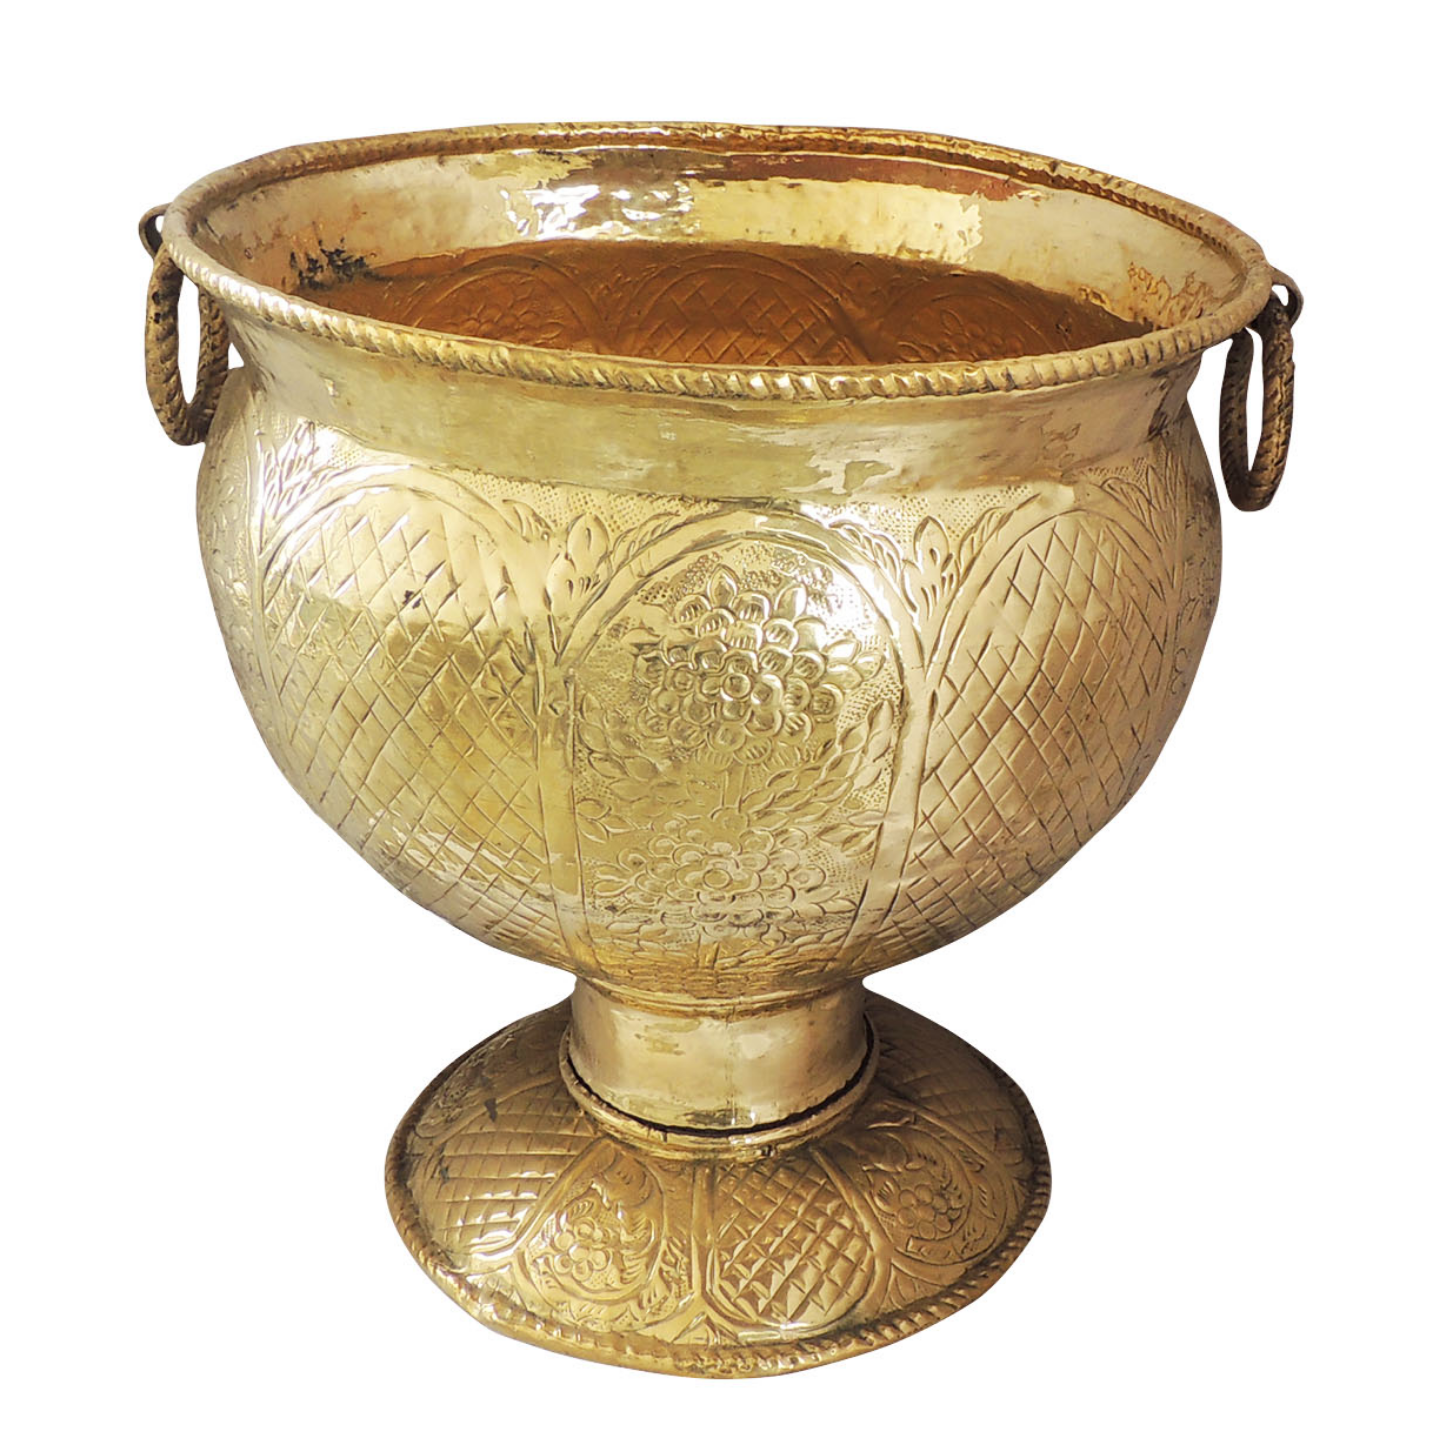 Brass Planter with Base - 20*20*22 inch (F597 J)